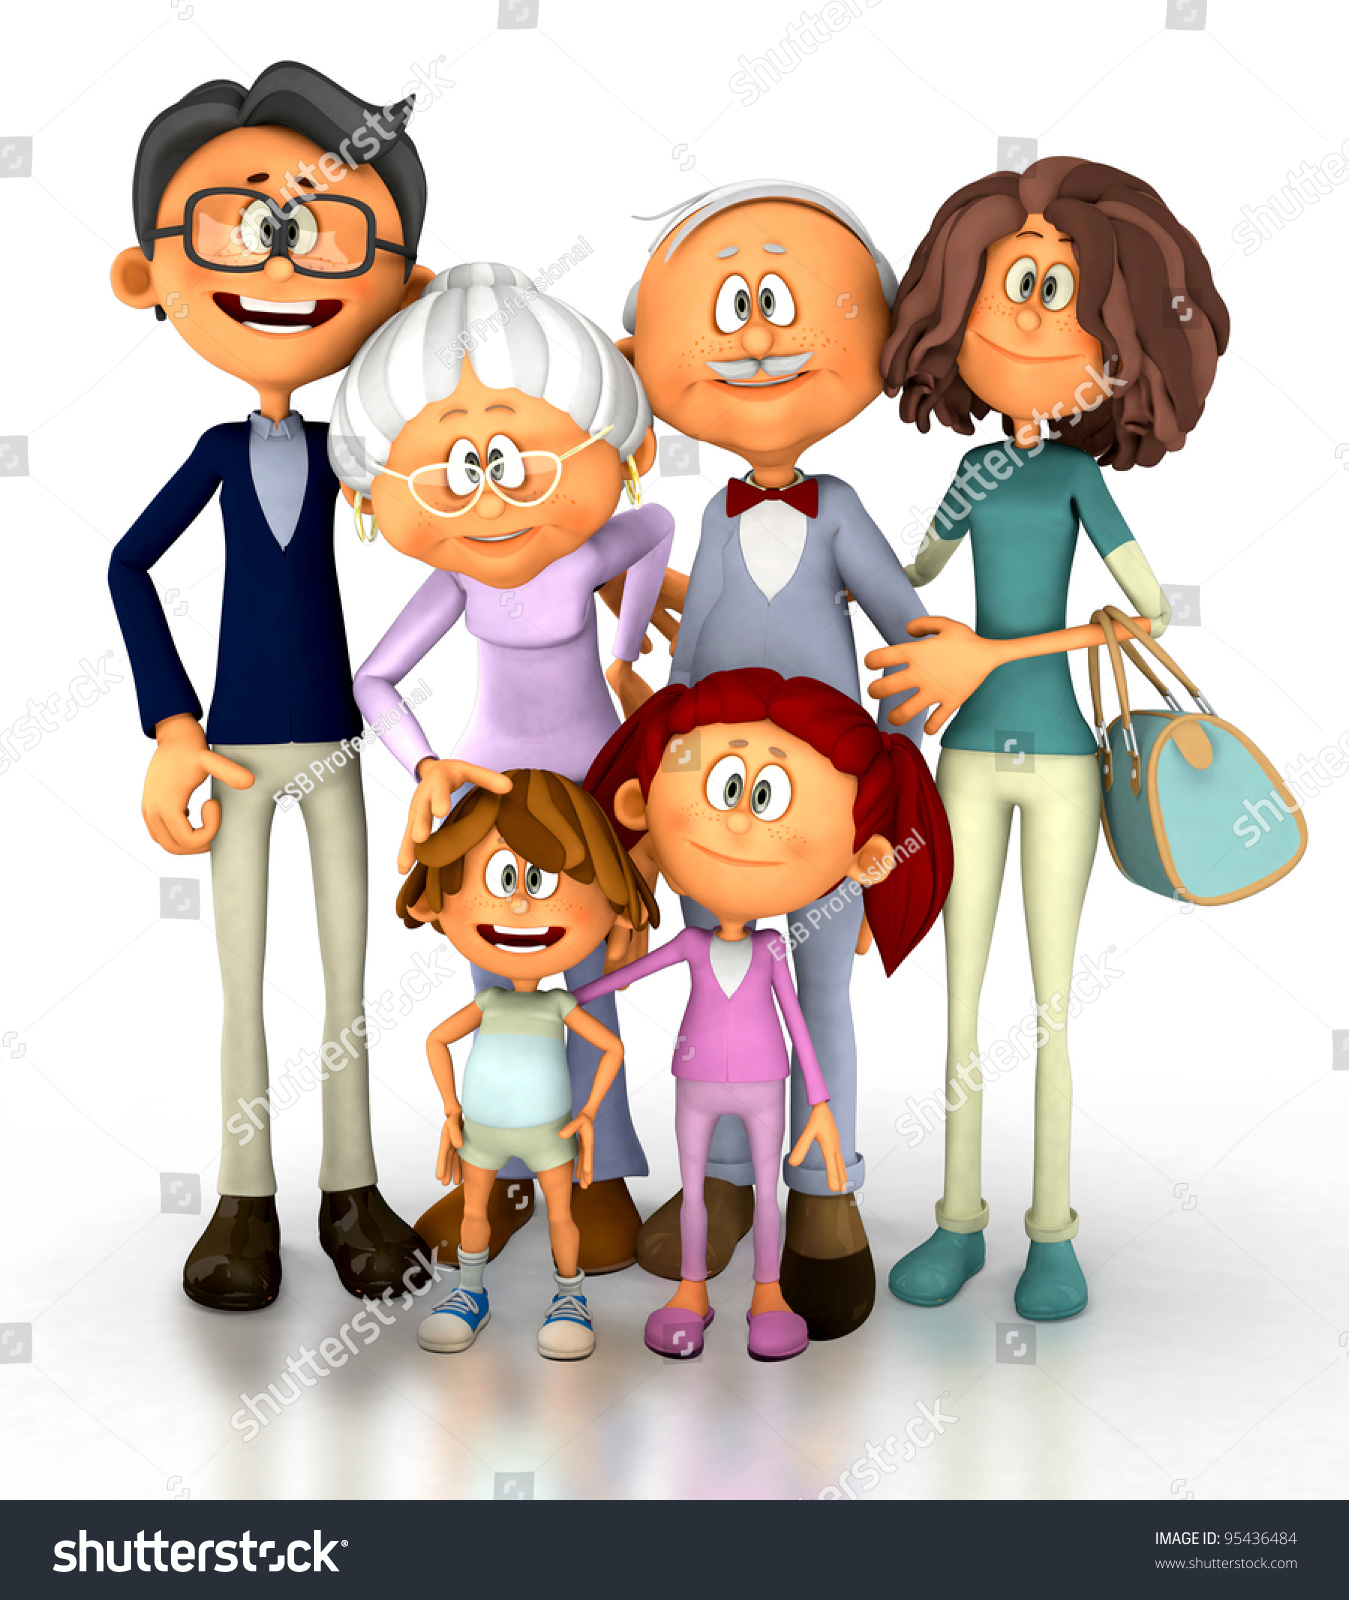 3D  Lolicon young <b>3D</b> family looking happy - isolated over a white background - stock photo